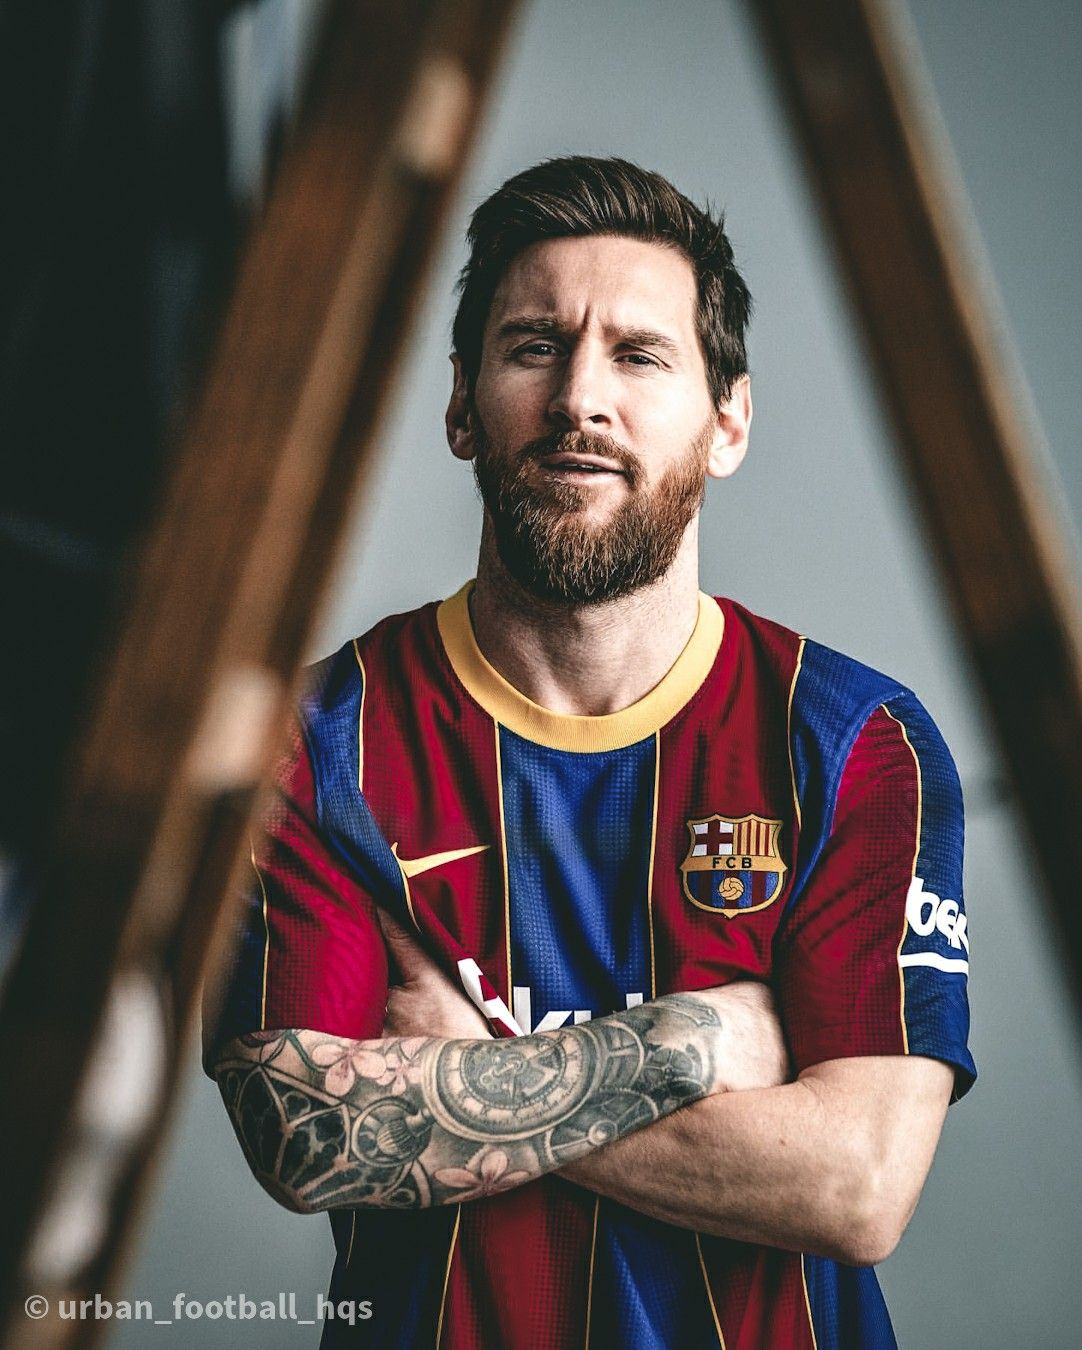 barcelona kit 2020 21 in 2020 lionel messi messi and ronaldo leo messi lionel messi messi and ronaldo leo messi